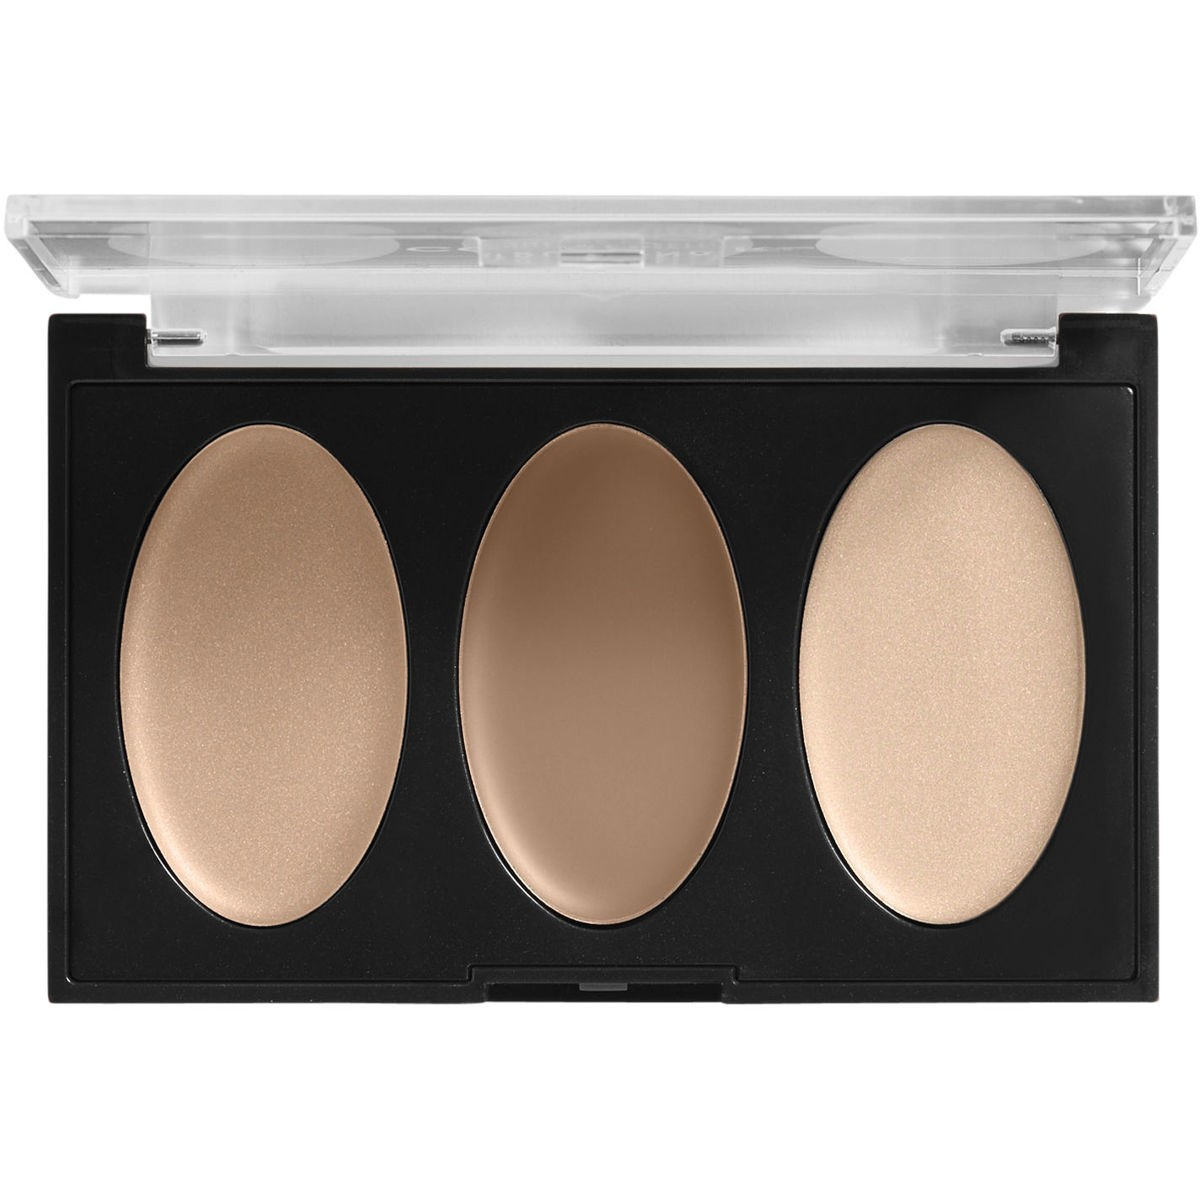 Big W Lights Covergirl Trublend Contour Palette Light Big W